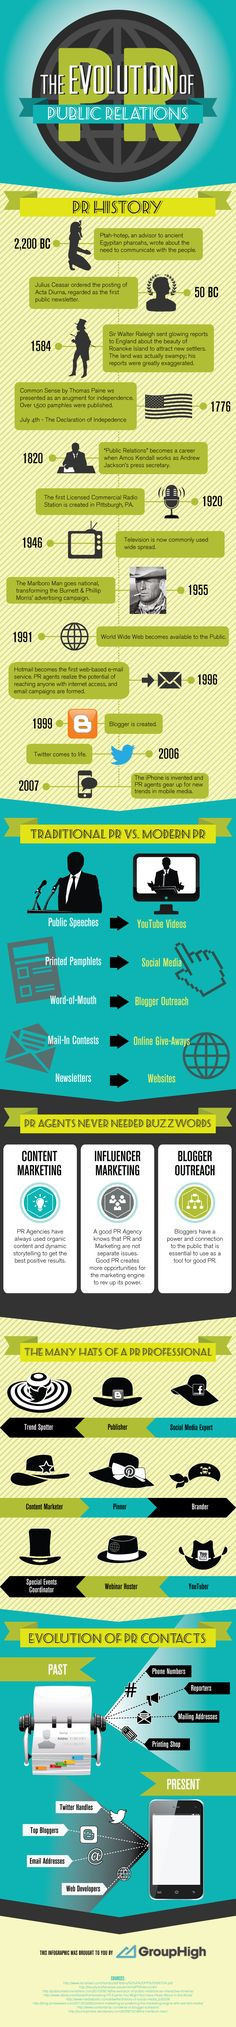 The Evolution of PR #infographic